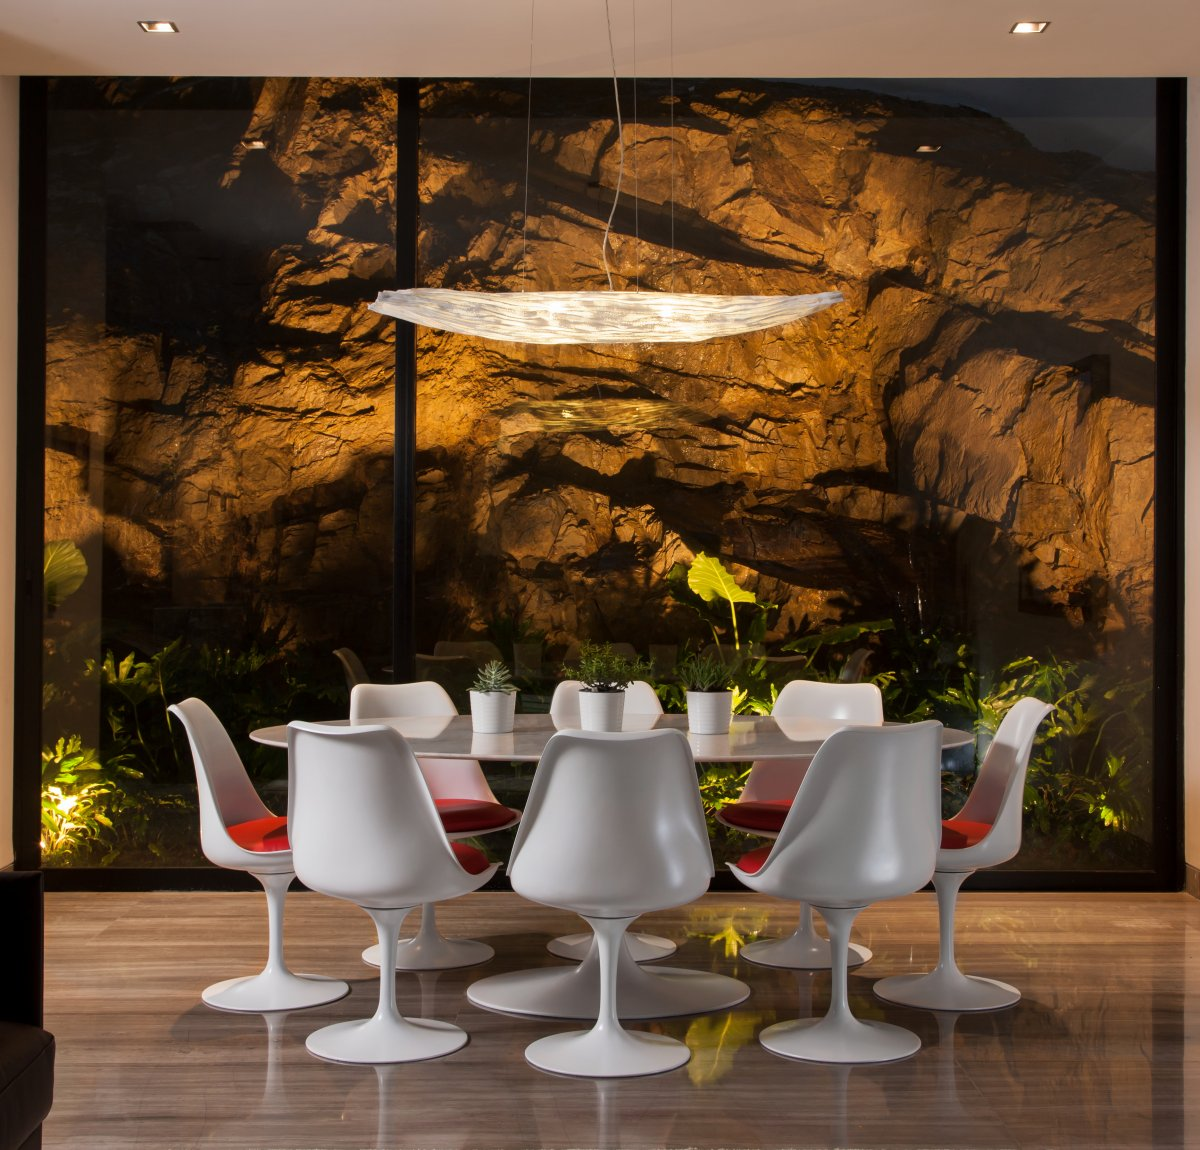 White Dining Table, Lighting, Natural Rock, Stylish Contemporary Home in Garza Garcia, Mexico